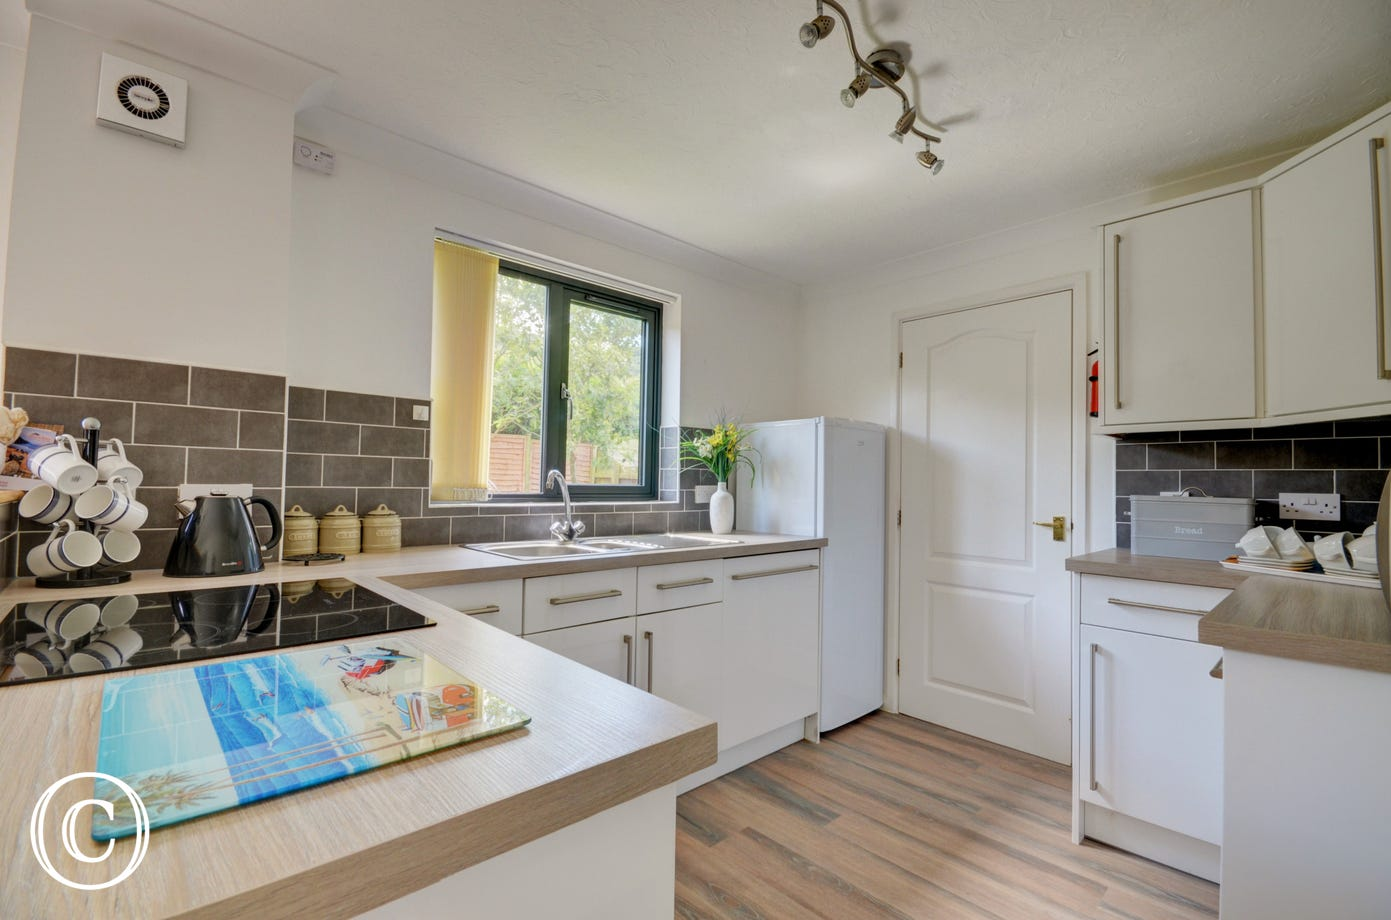 The kitchen is modern and bright and benefits from a useful utility room